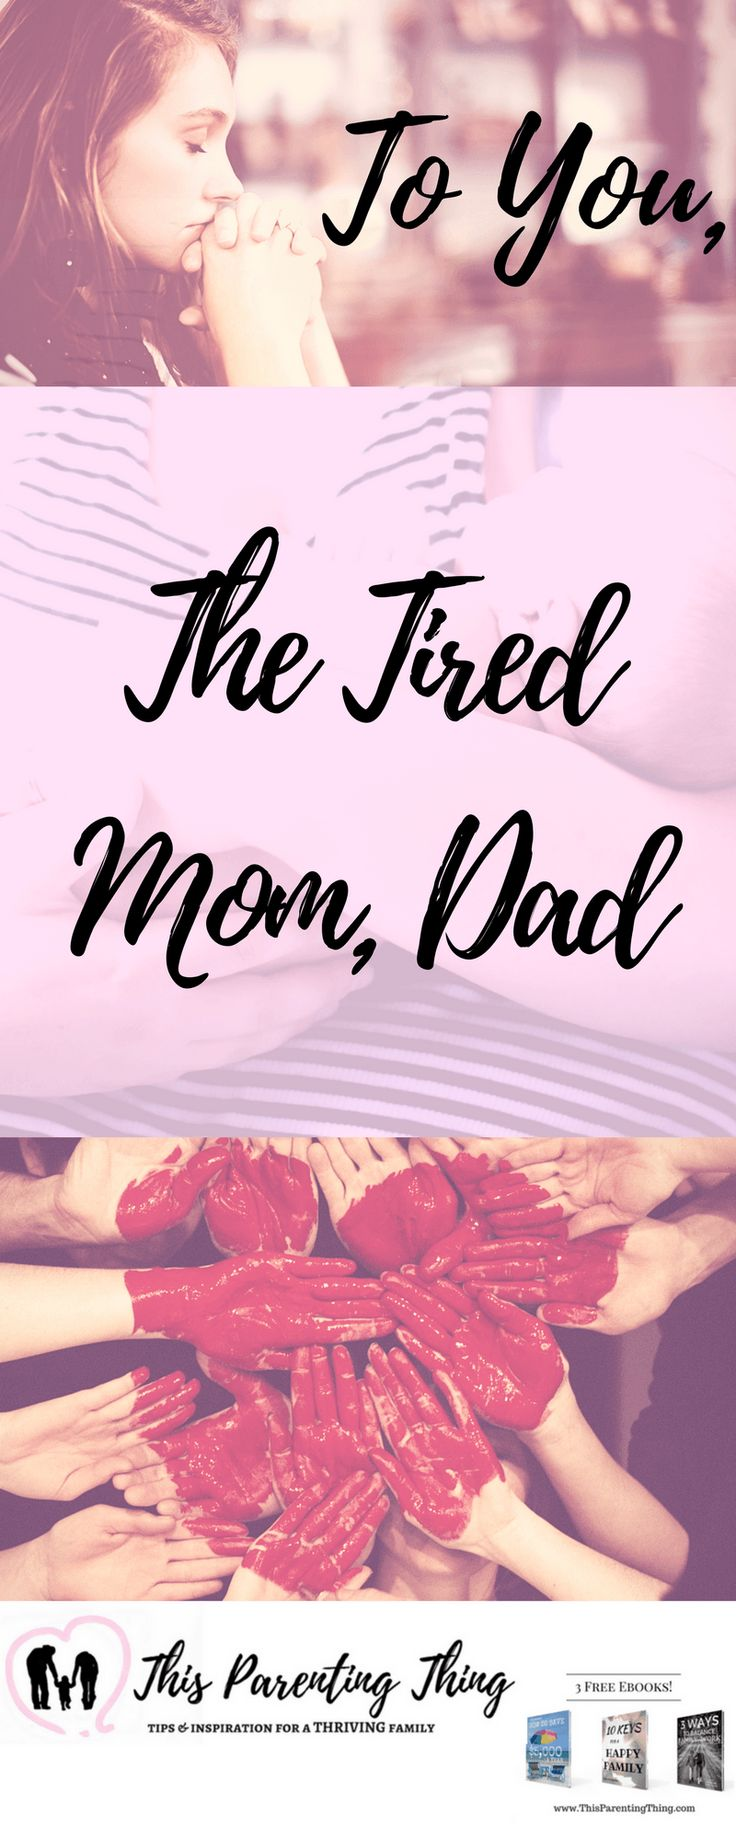 To You, The Tired Mom, Dad - A must read on This Parenting Thing!